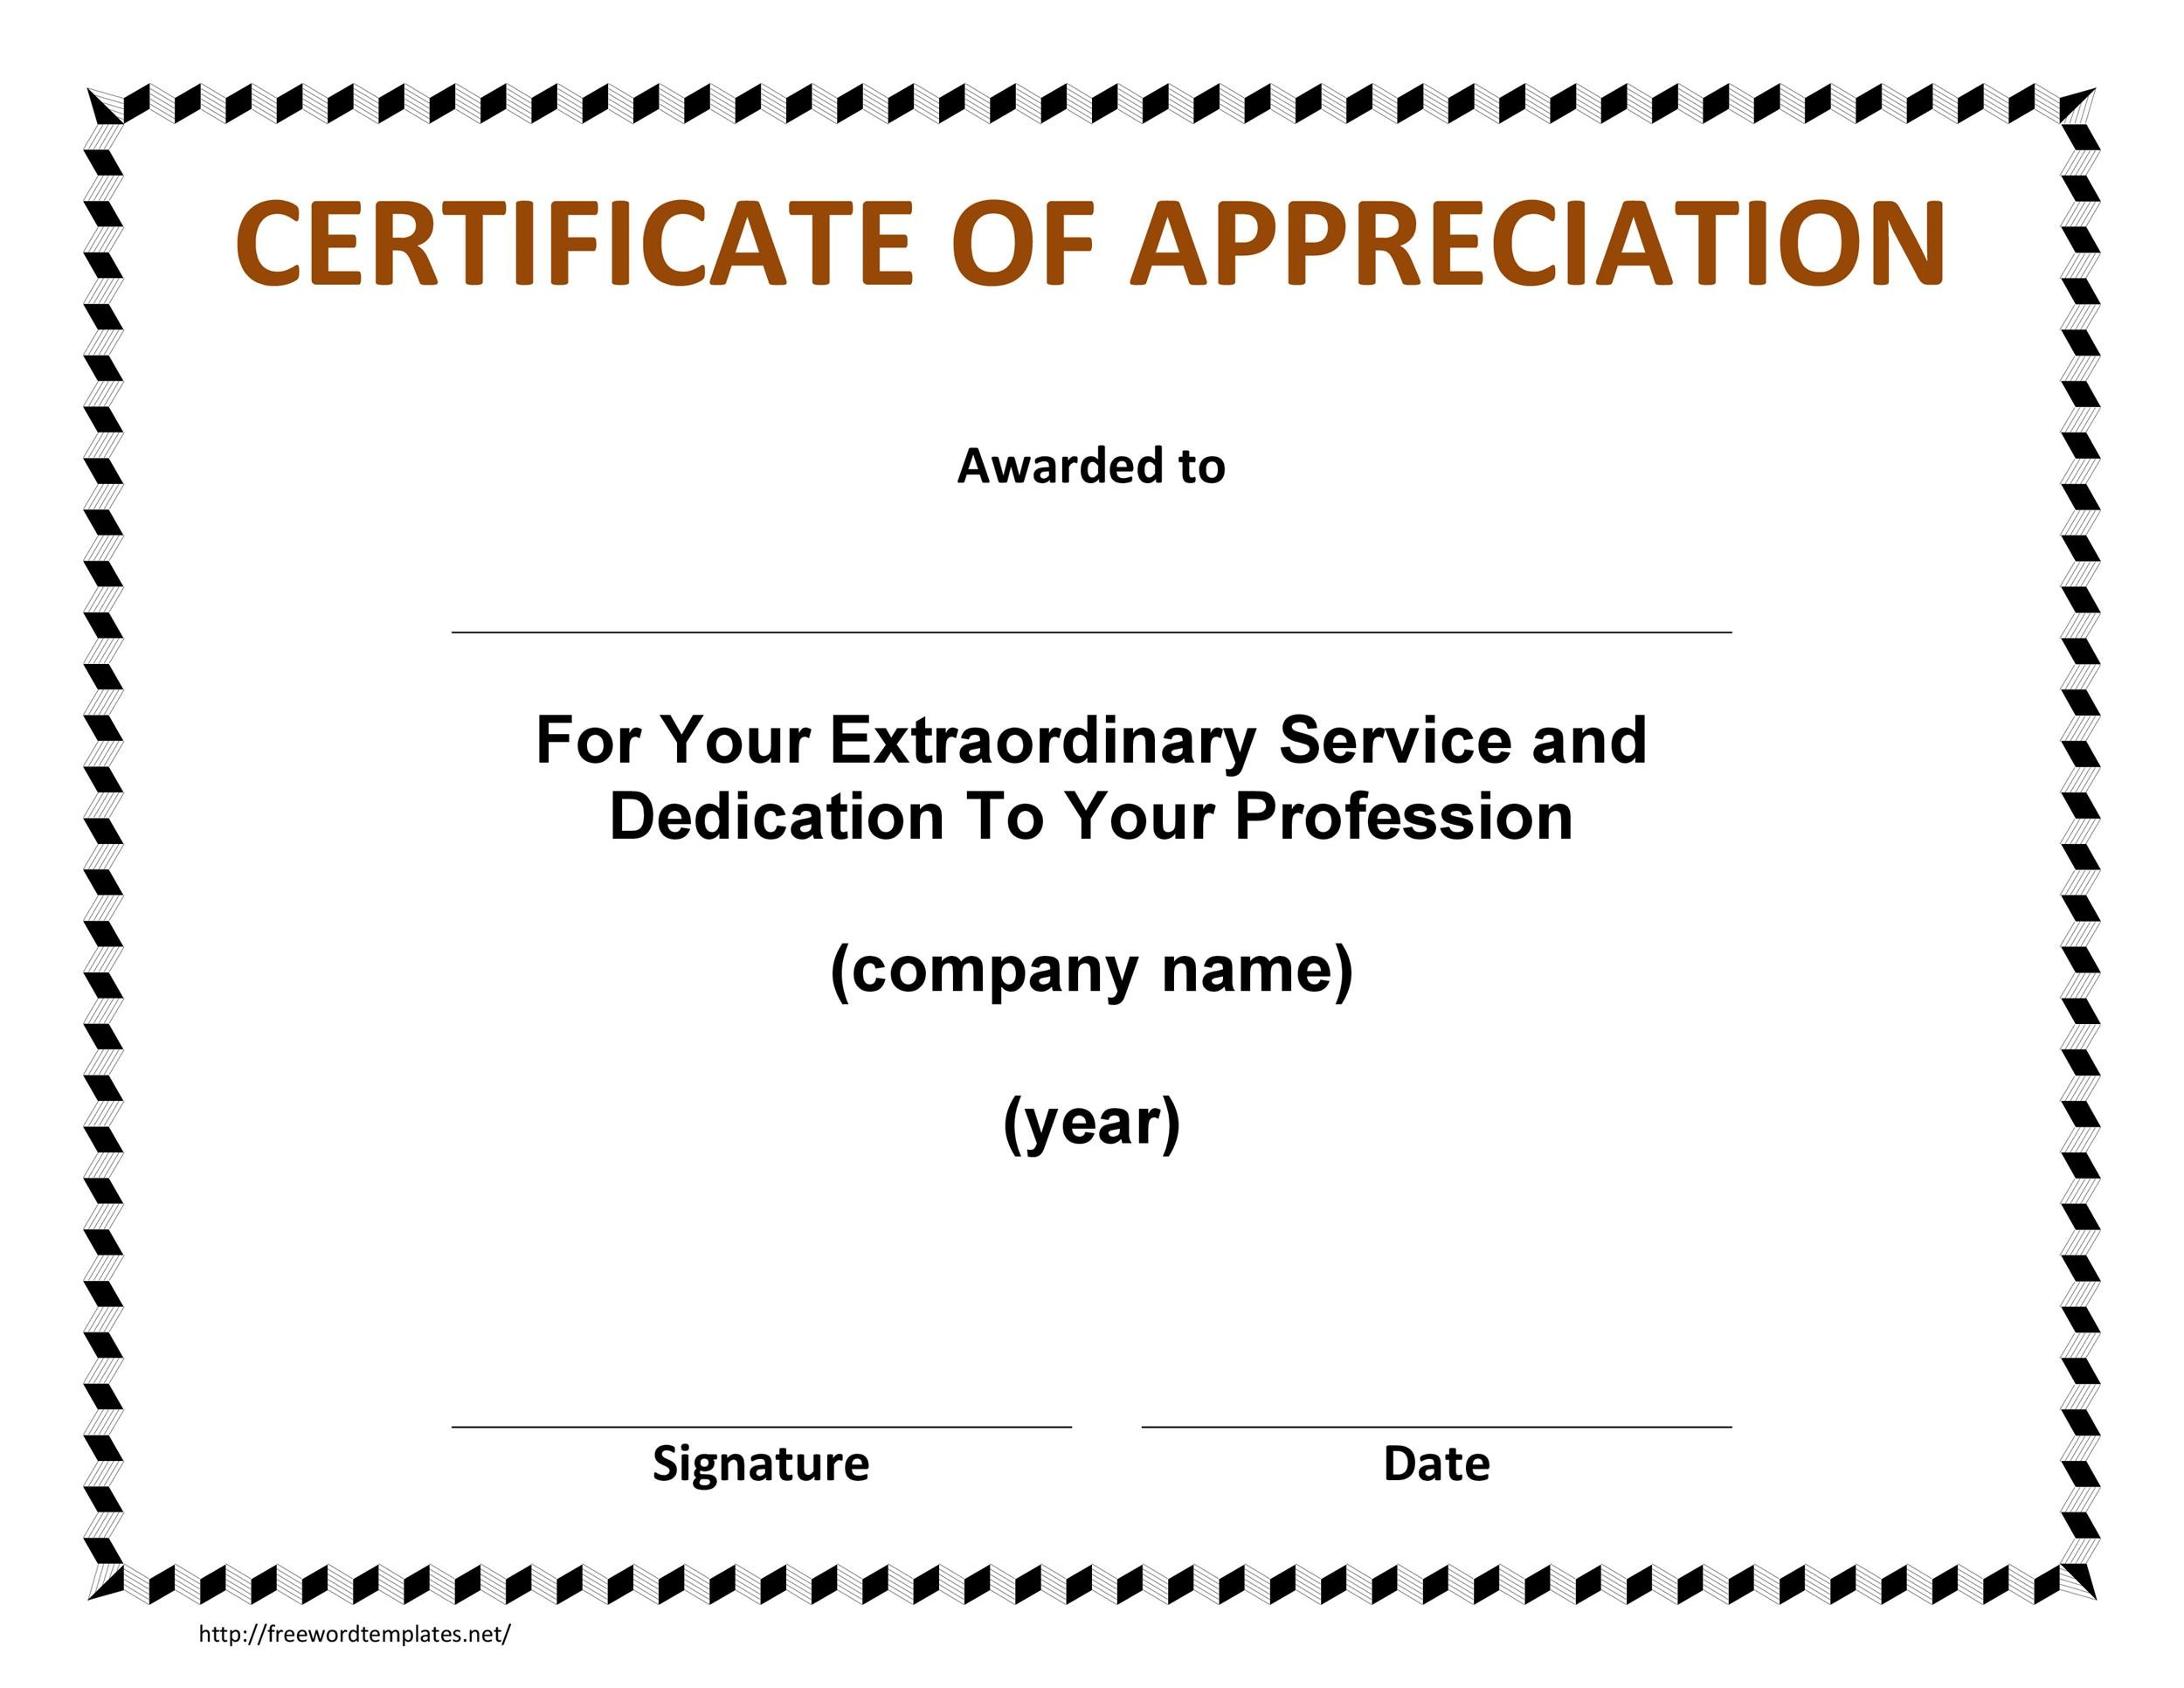 30 free certificate of appreciation templates and letters printable certificate of appreciation 04 yelopaper